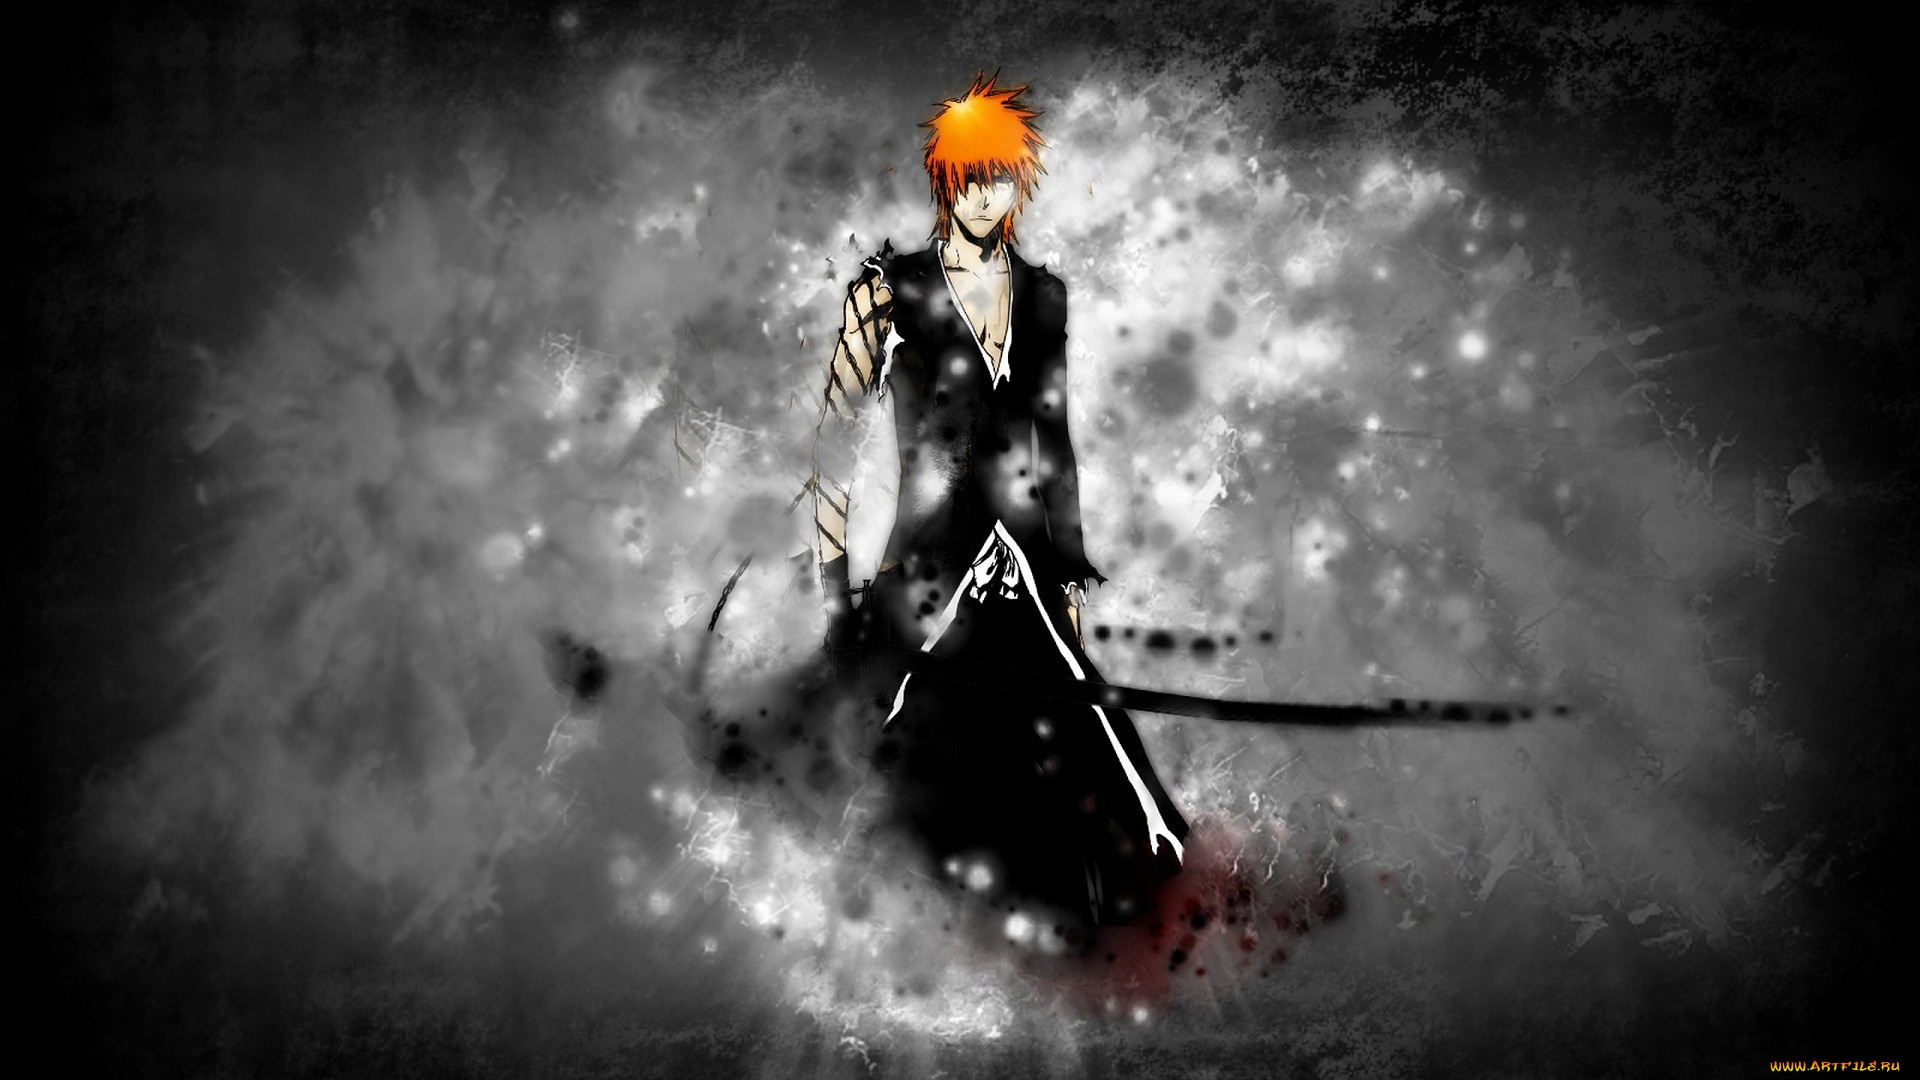 Bleach background wallpaper